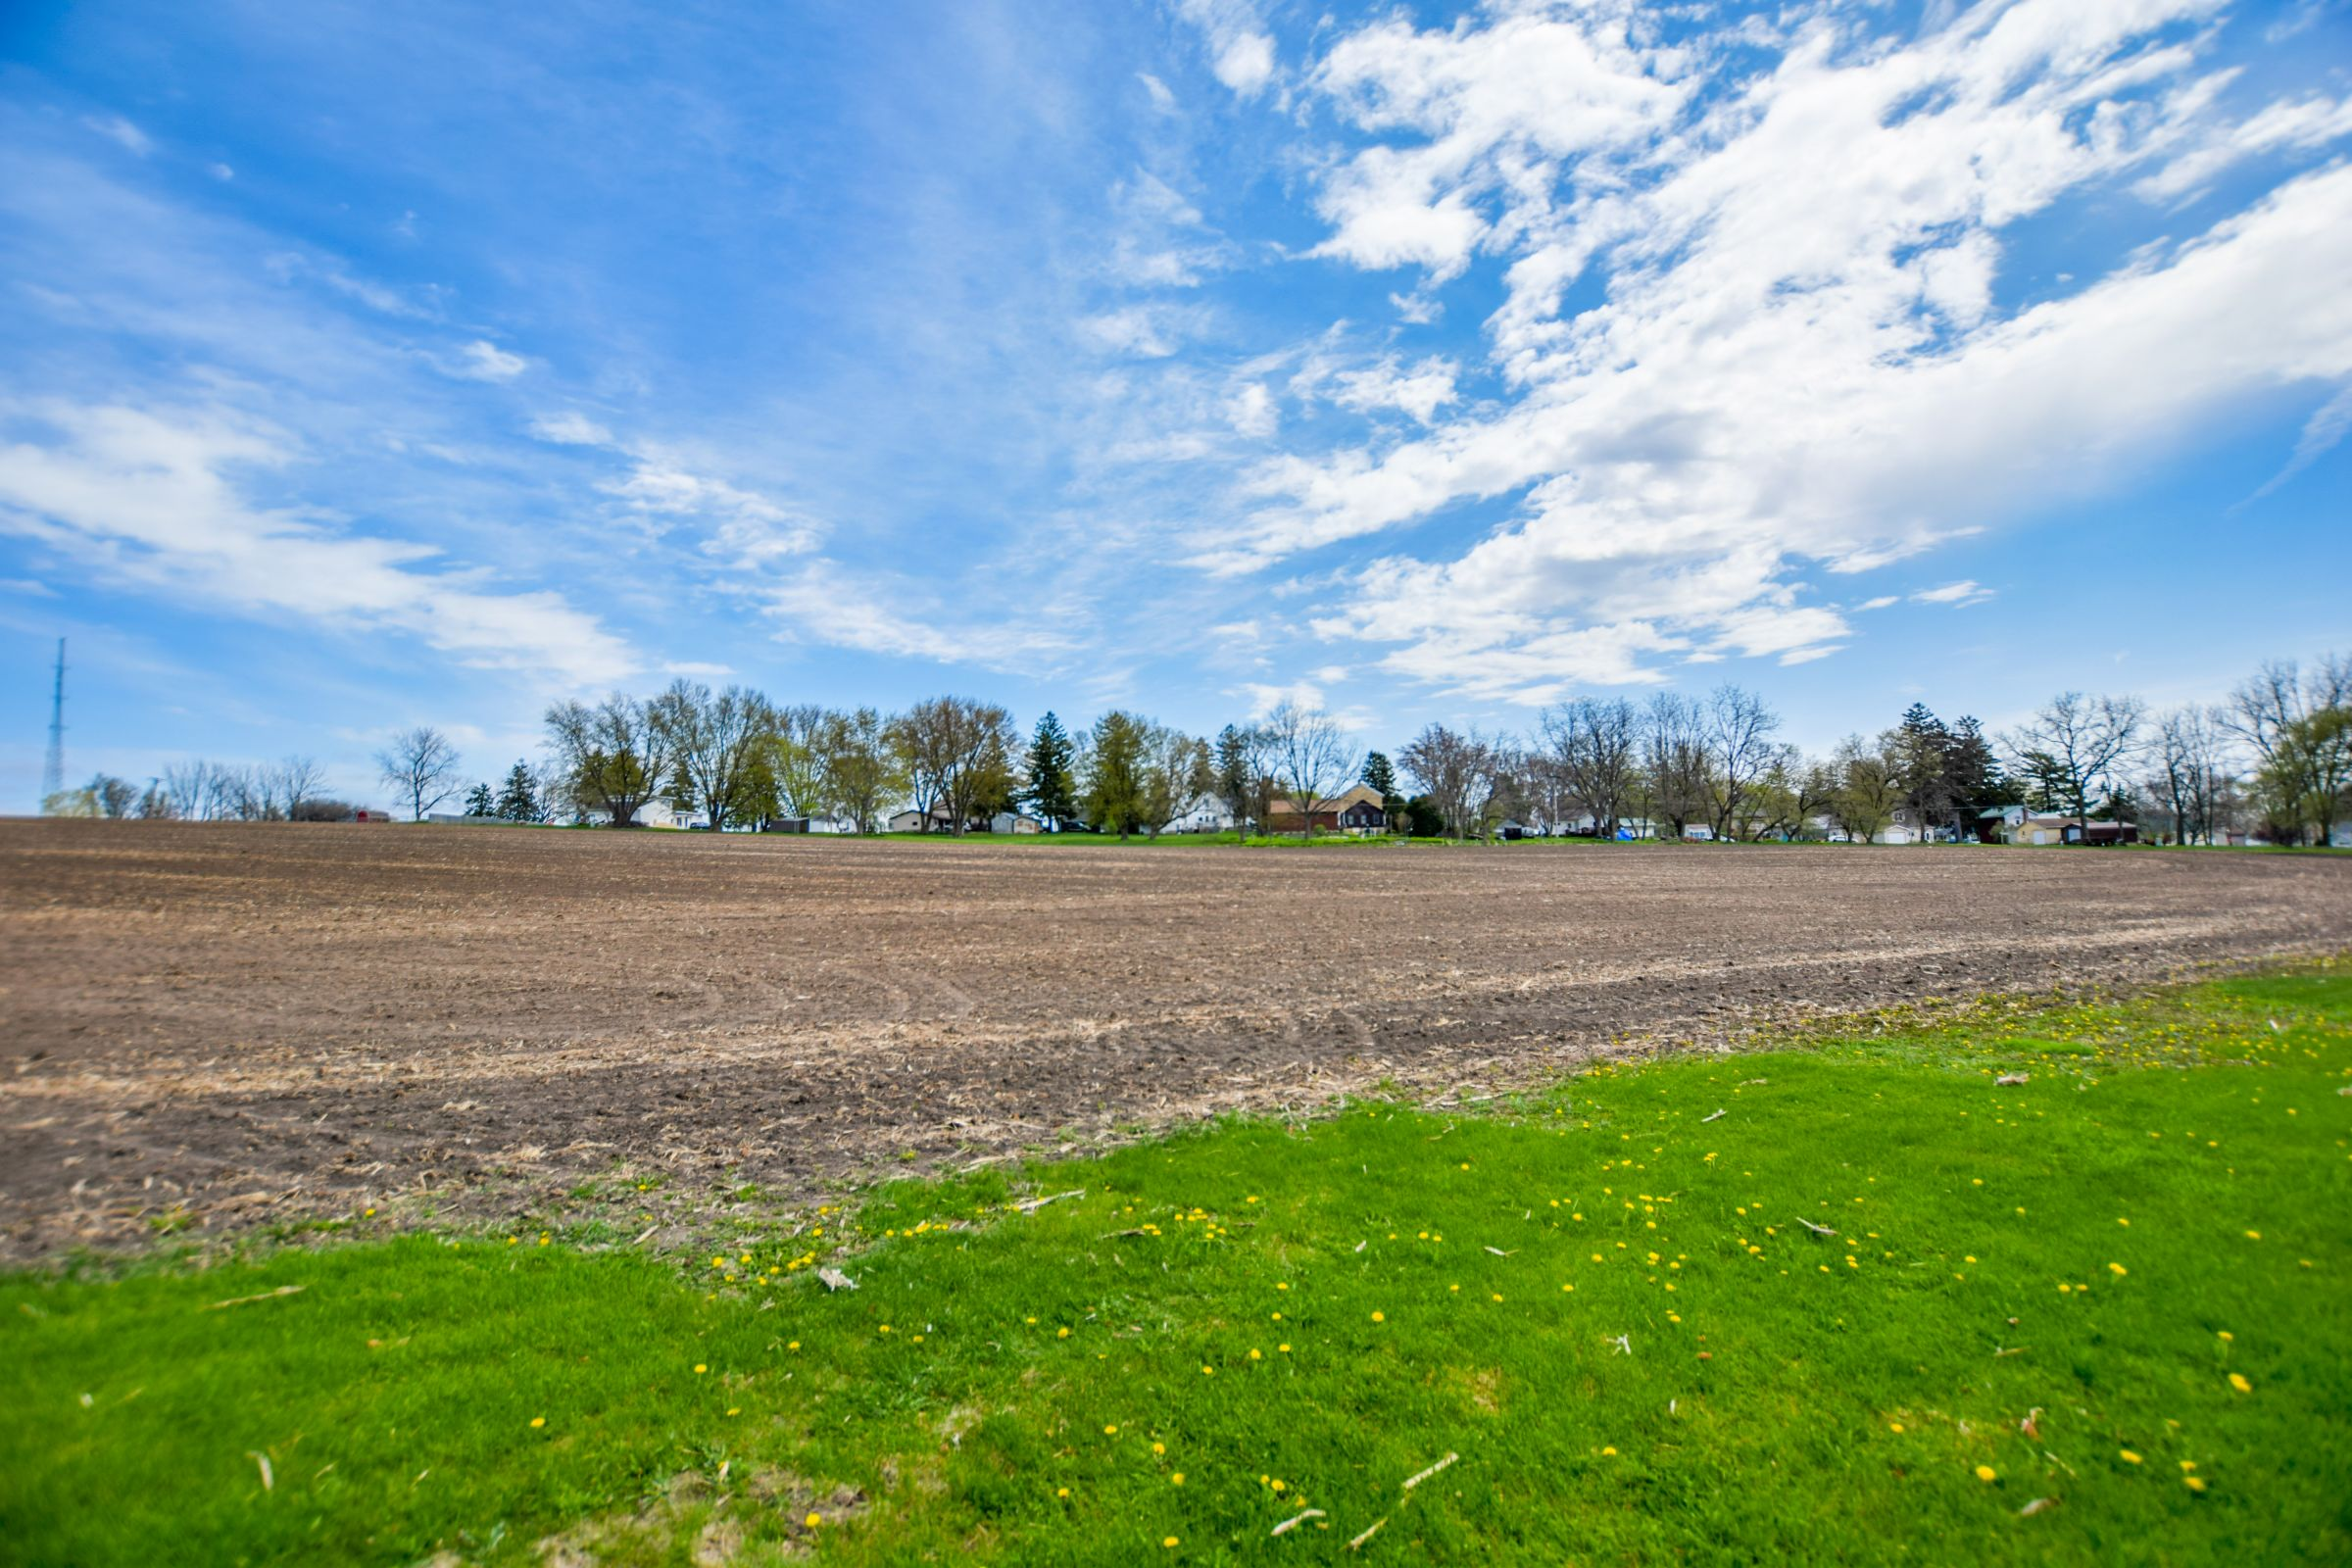 development-land-commercial-iowa-county-wisconsin-152-acres-listing-number-15474-2-2021-05-18-165928.jpg